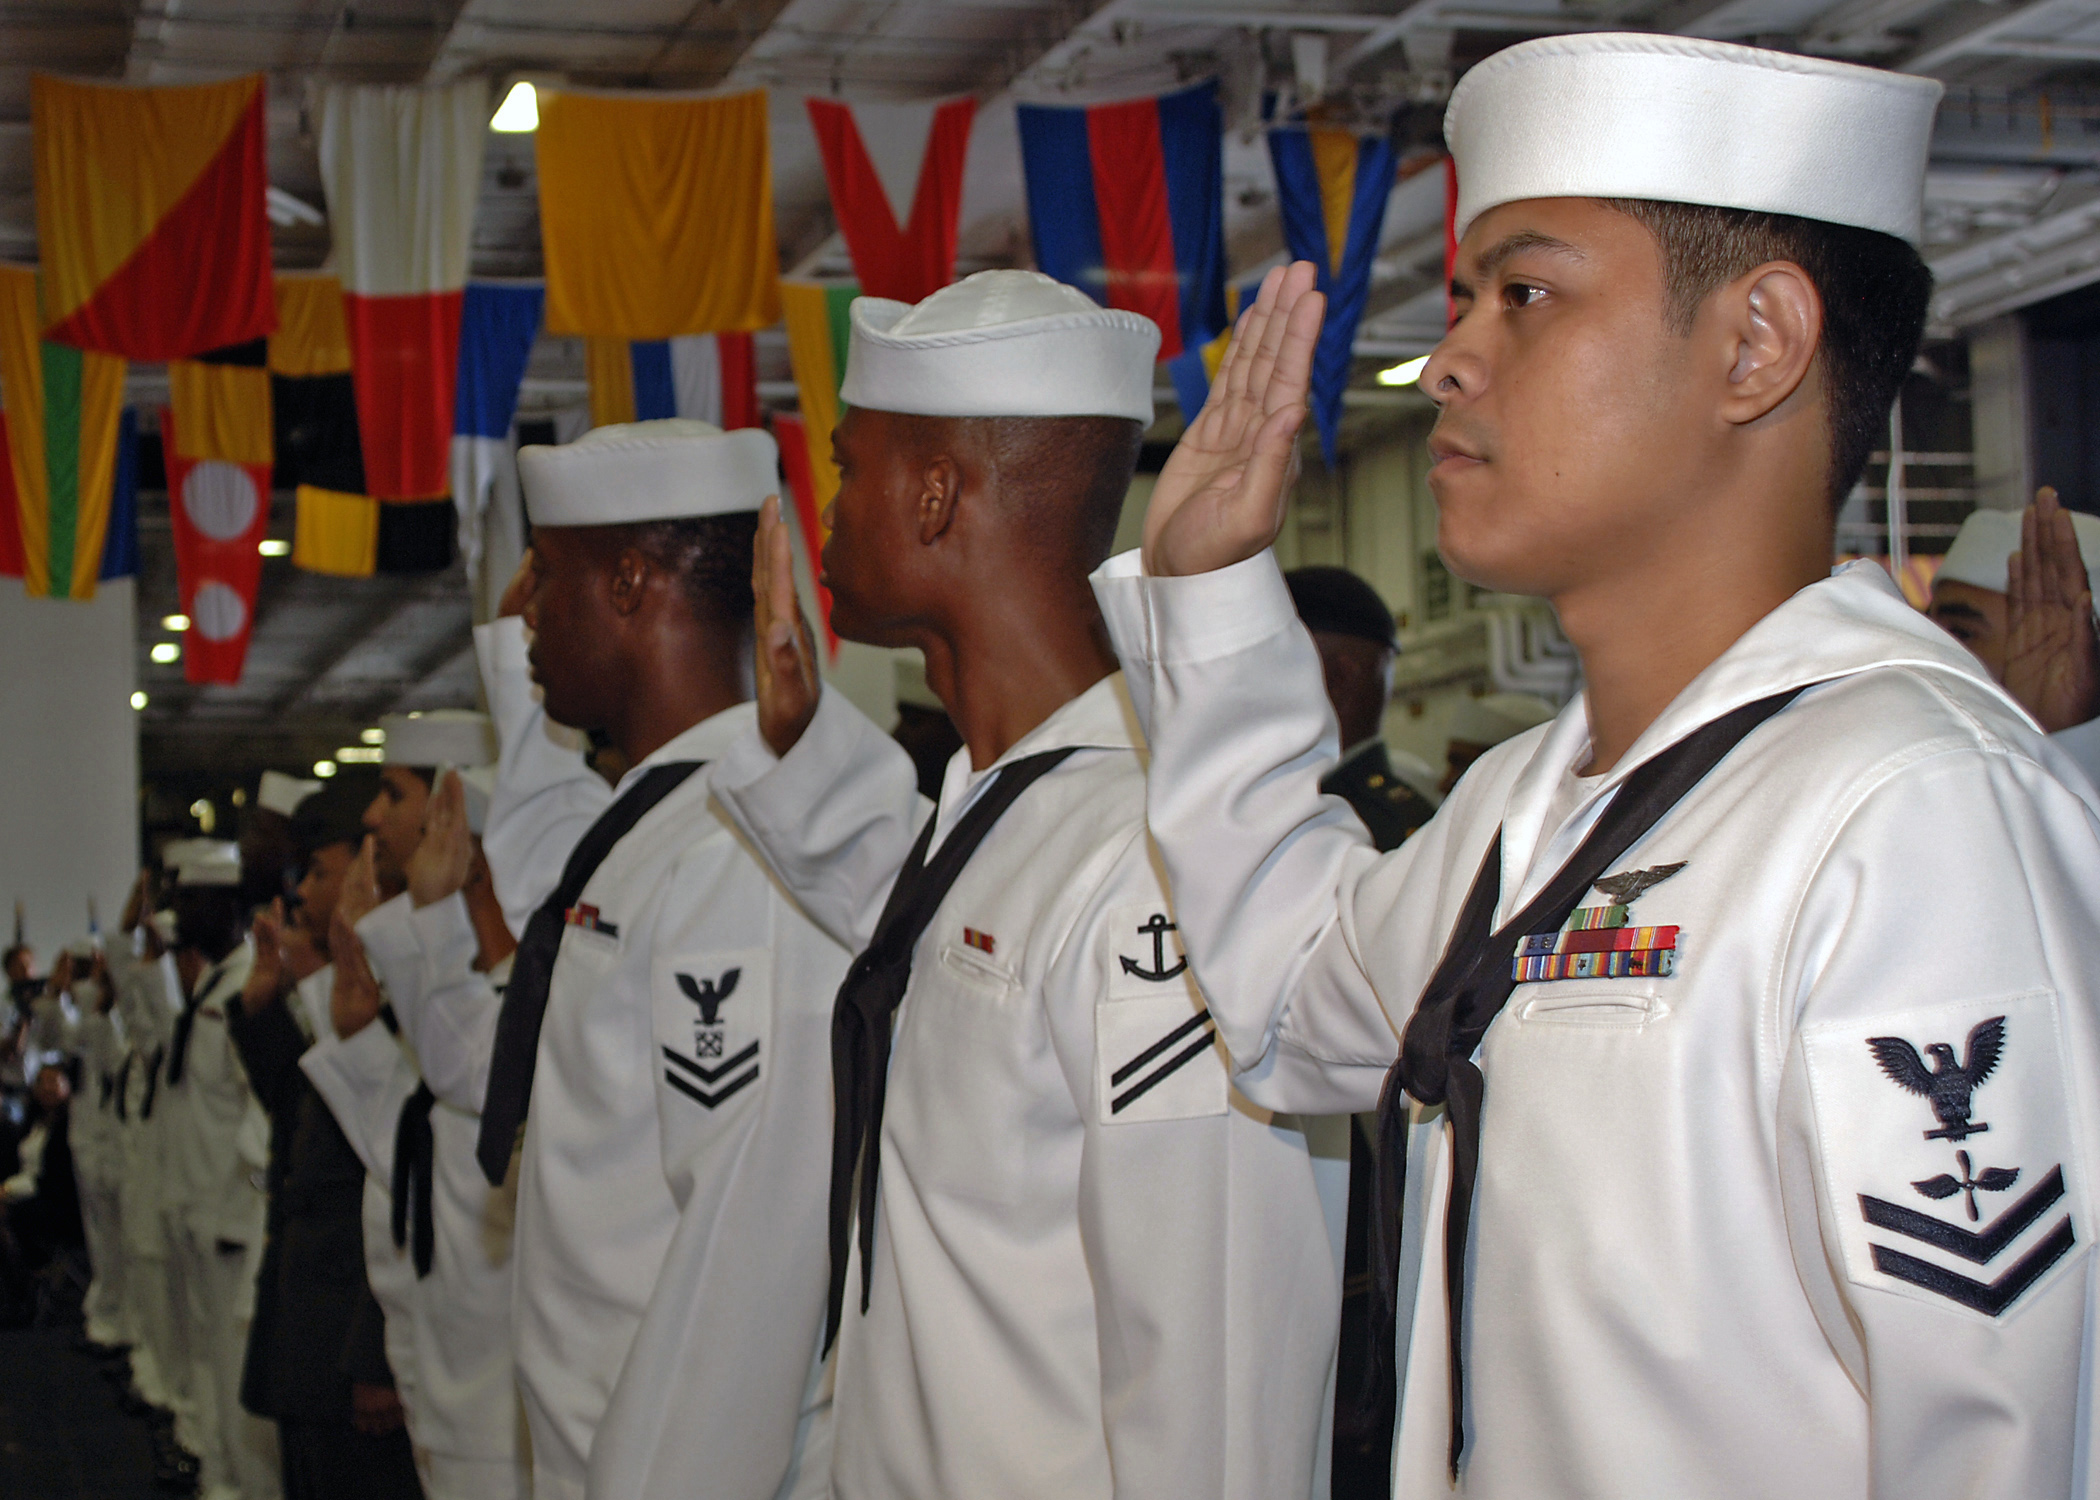 us navy 060614 n 1045b 029 u s navy sailors take the oath of file us navy 060614 n 1045b 029 u s navy sailors take the oath of citizenship given by u s citizenship and immigration services